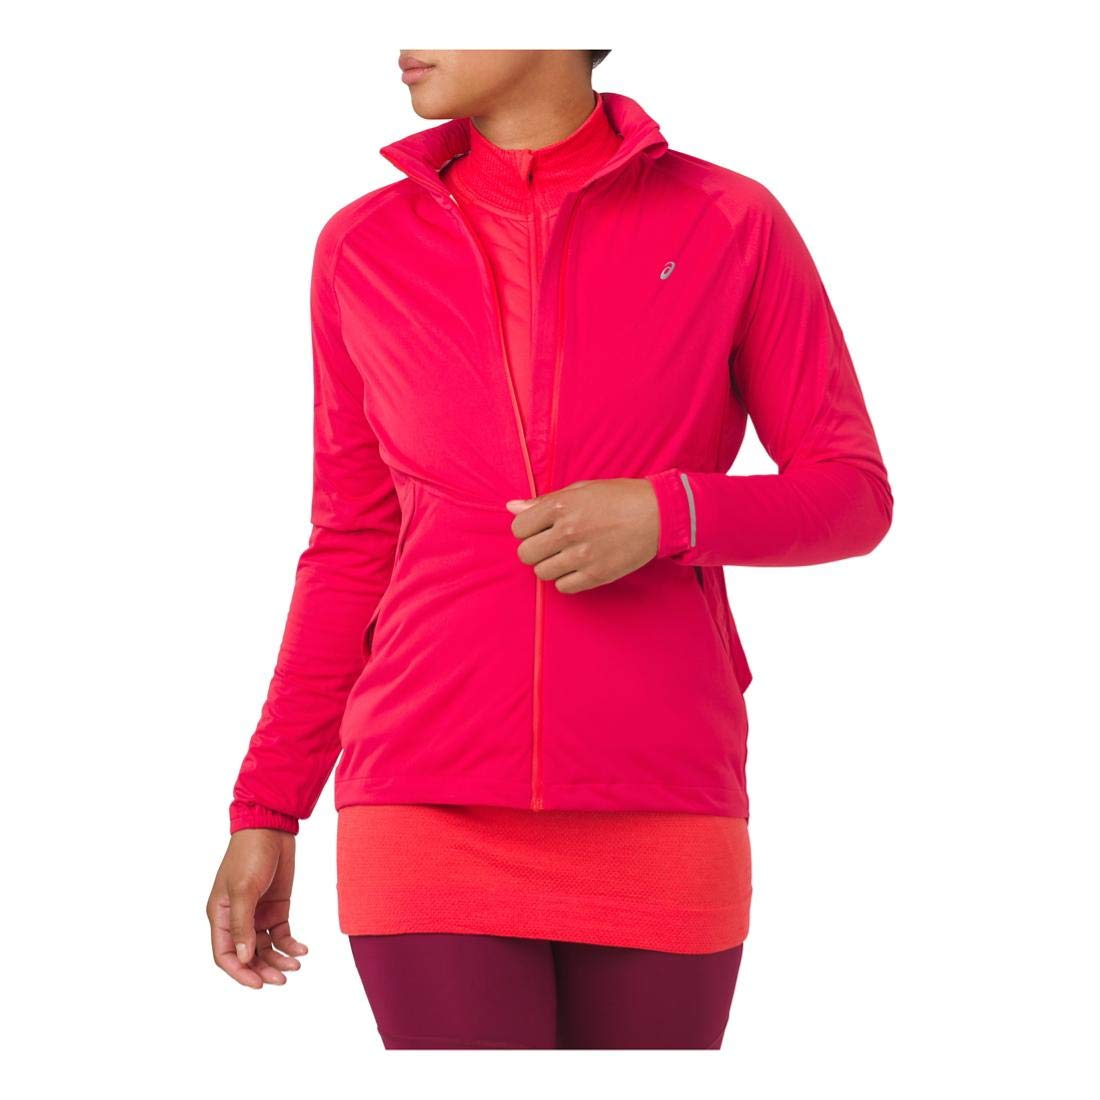 ASICS Women's System Jacket, Samba, X-Small by ASICS (Image #1)